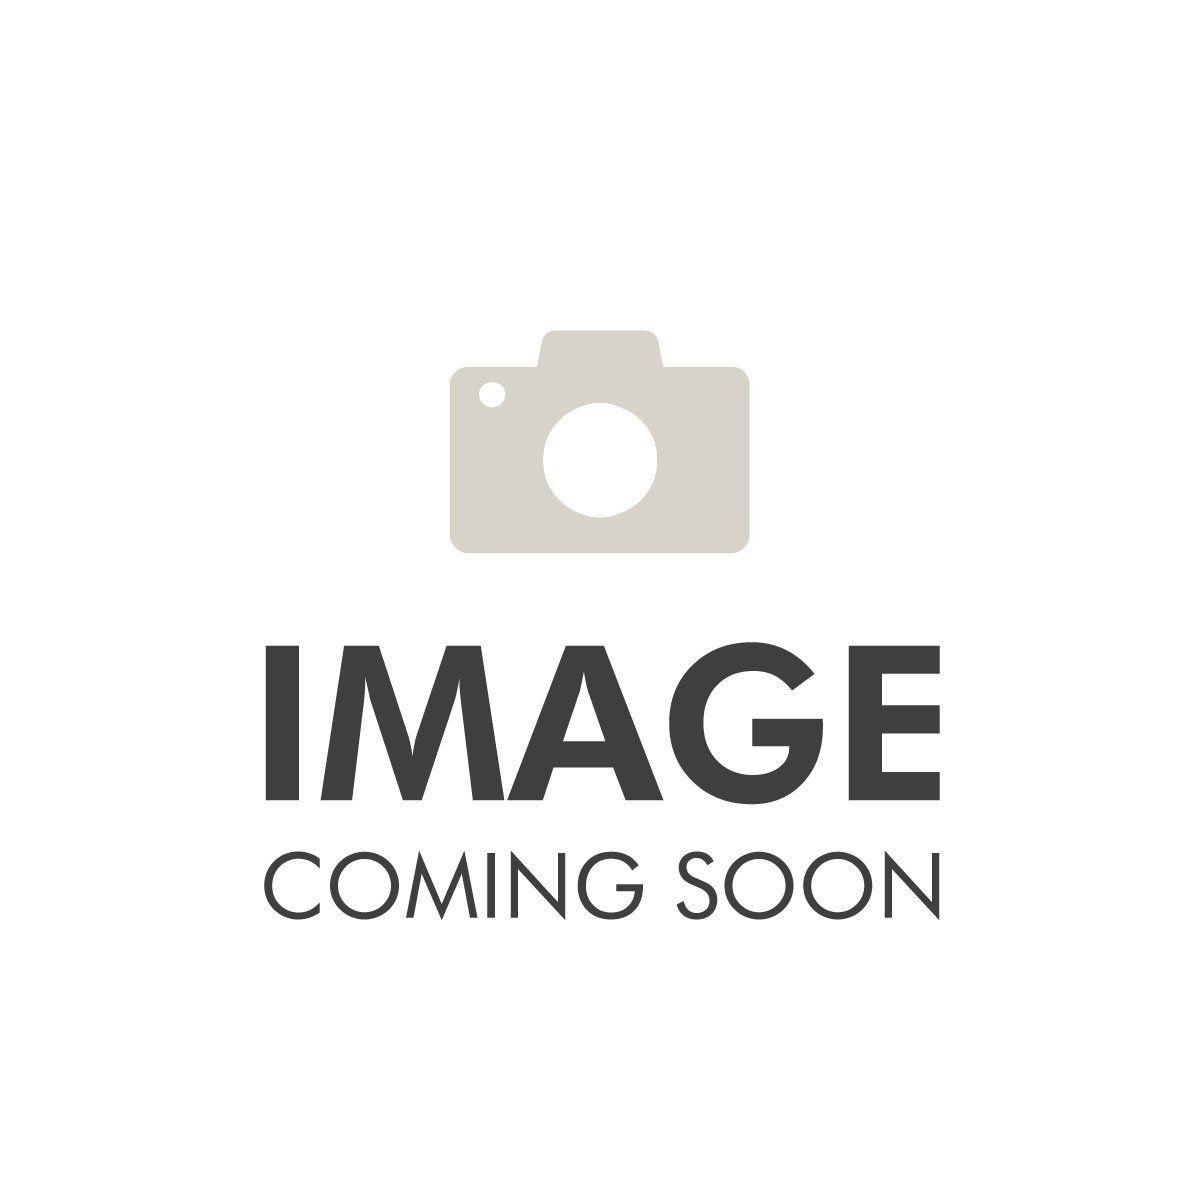 image-coming-soon-1 About Us